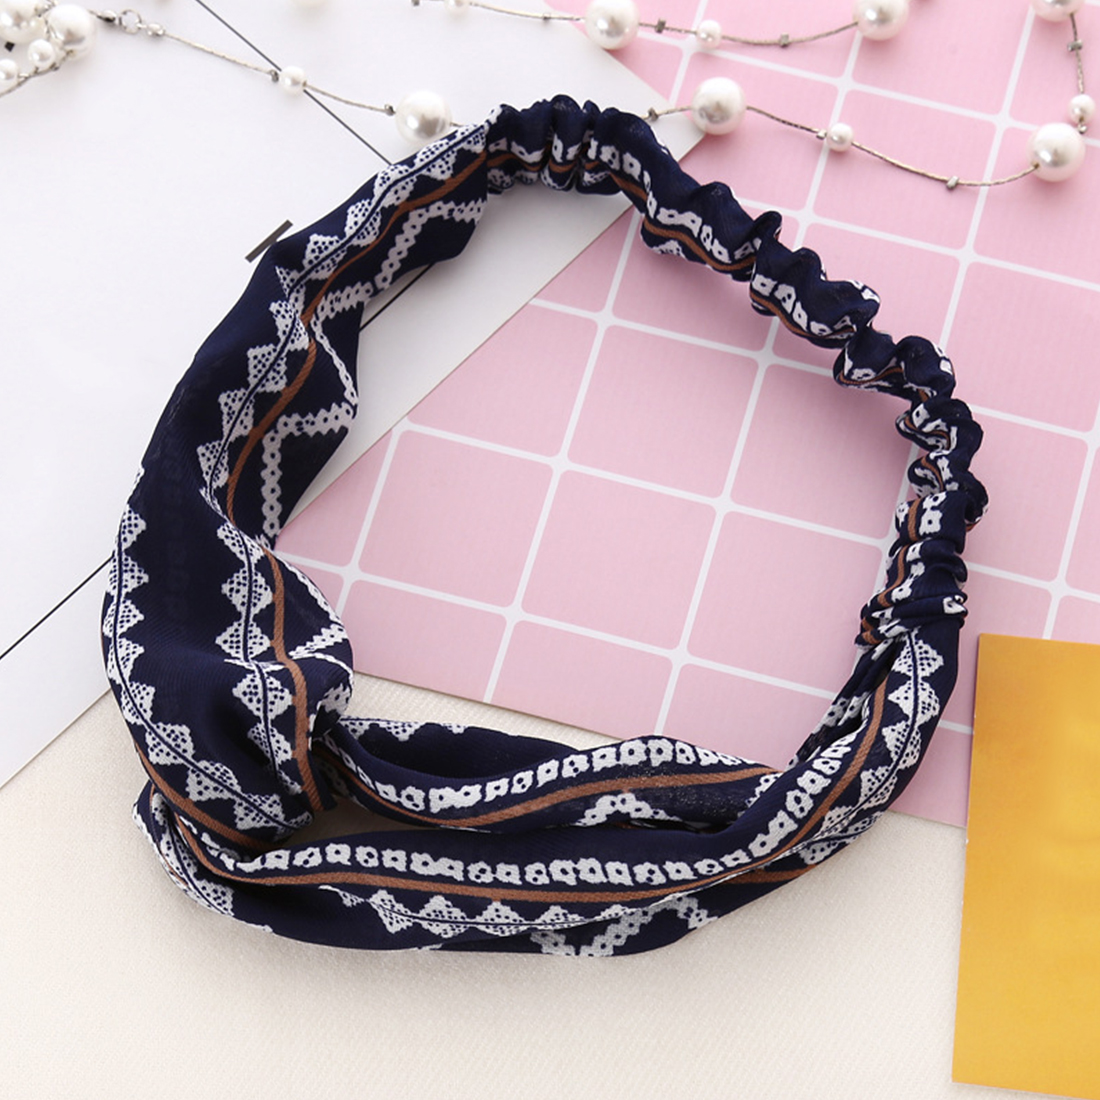 Bohemian Style Elastic Headbands Boho Cross Floral Turban Girls Flower Hairbands Striped Headwrap Hair Accessory in Women 39 s Hair Accessories from Apparel Accessories